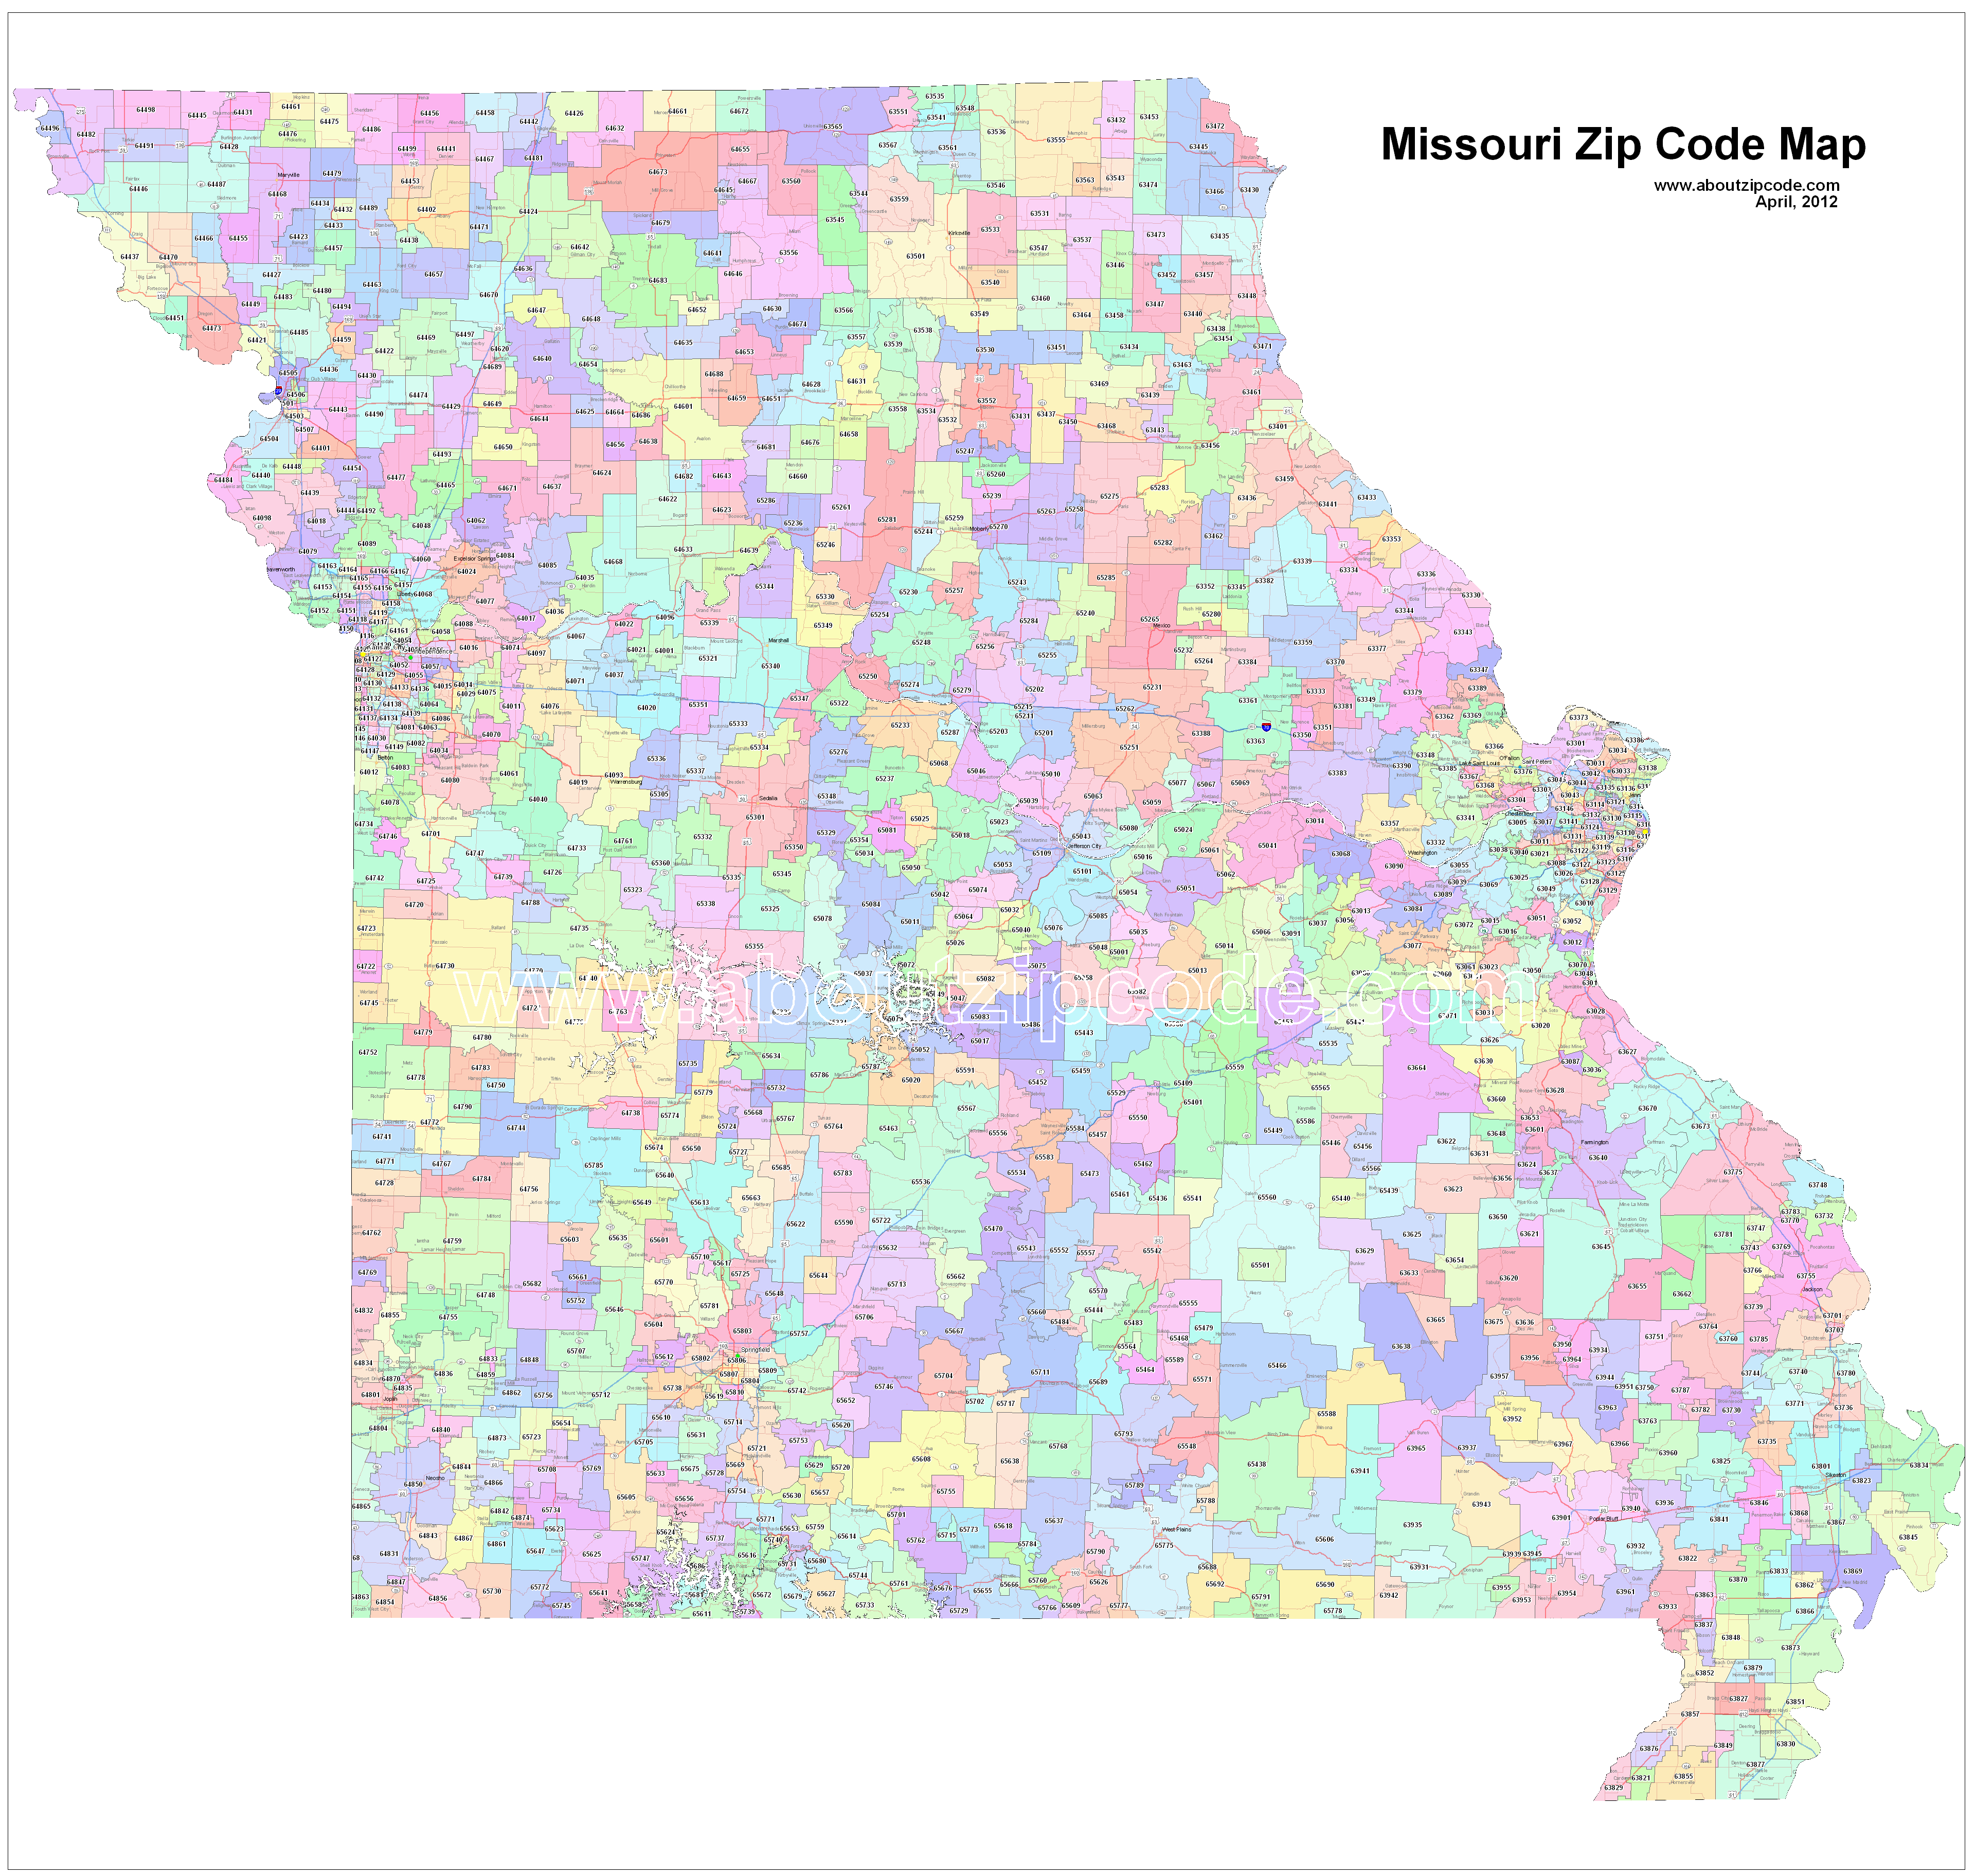 Missouri Zip Code Maps   Free Missouri Zip Code Maps